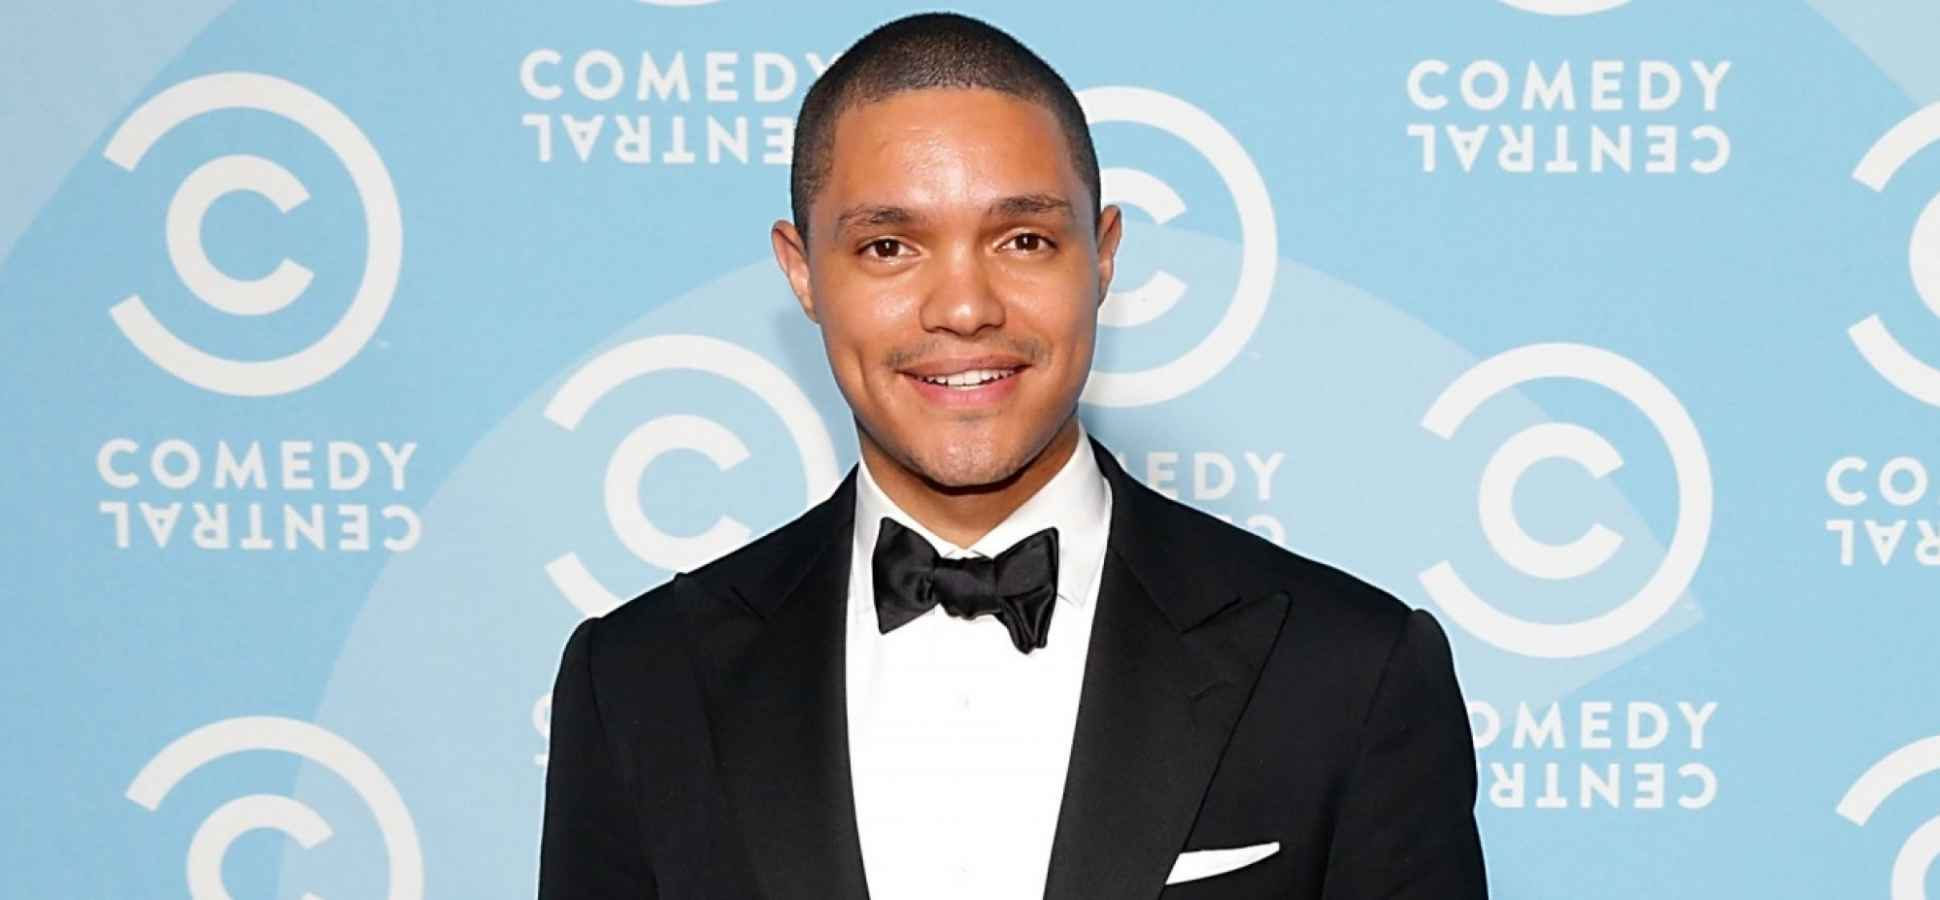 Trevor Noah on How to Be a (Funny) Leader